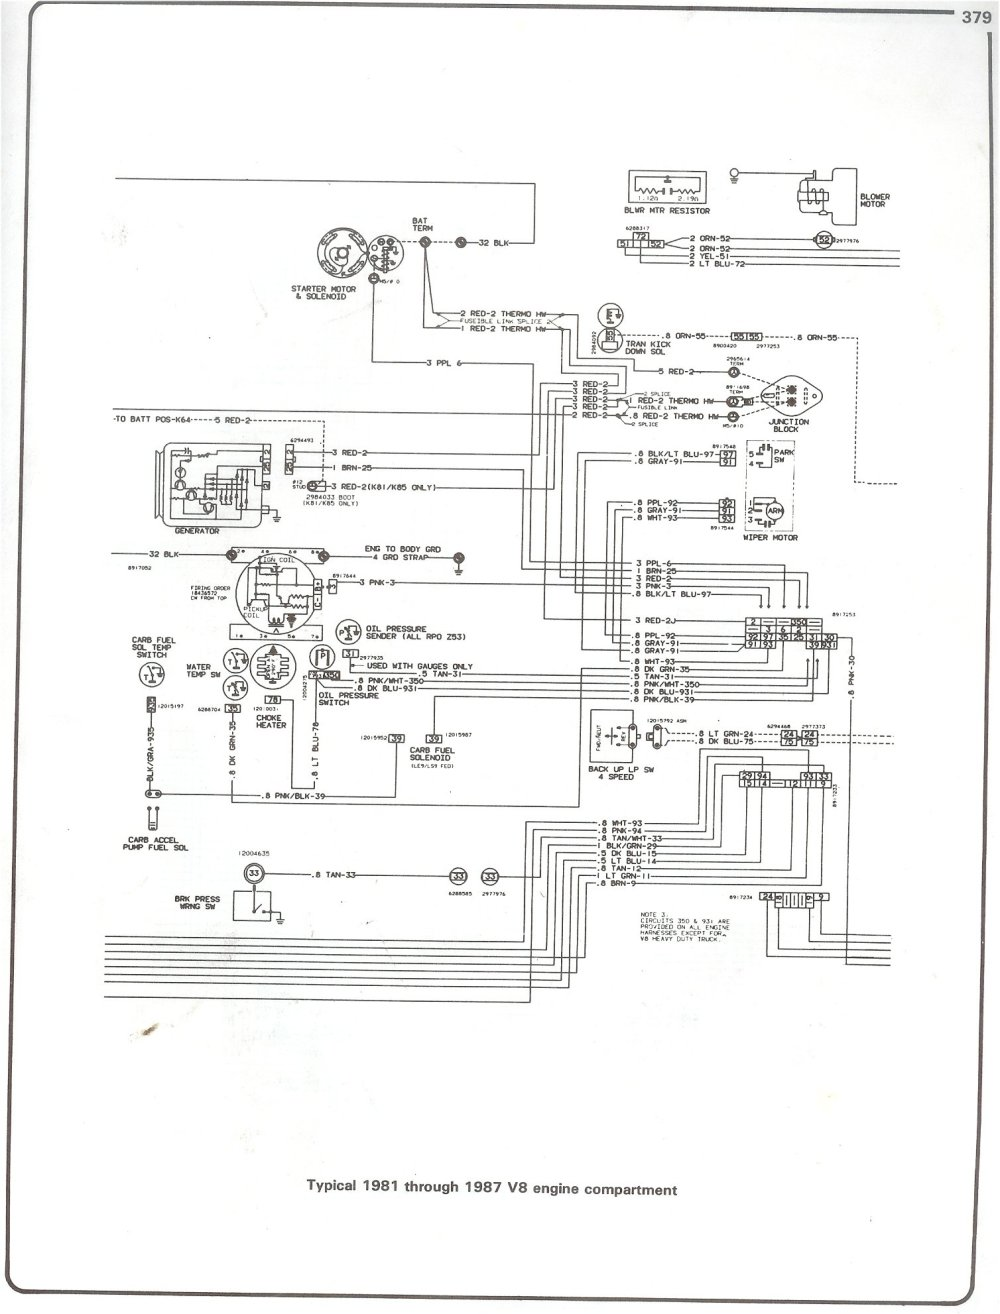 medium resolution of 1968 chevy c10 fuse box wiring library1955 corvette fuse box diagram complete 73 81